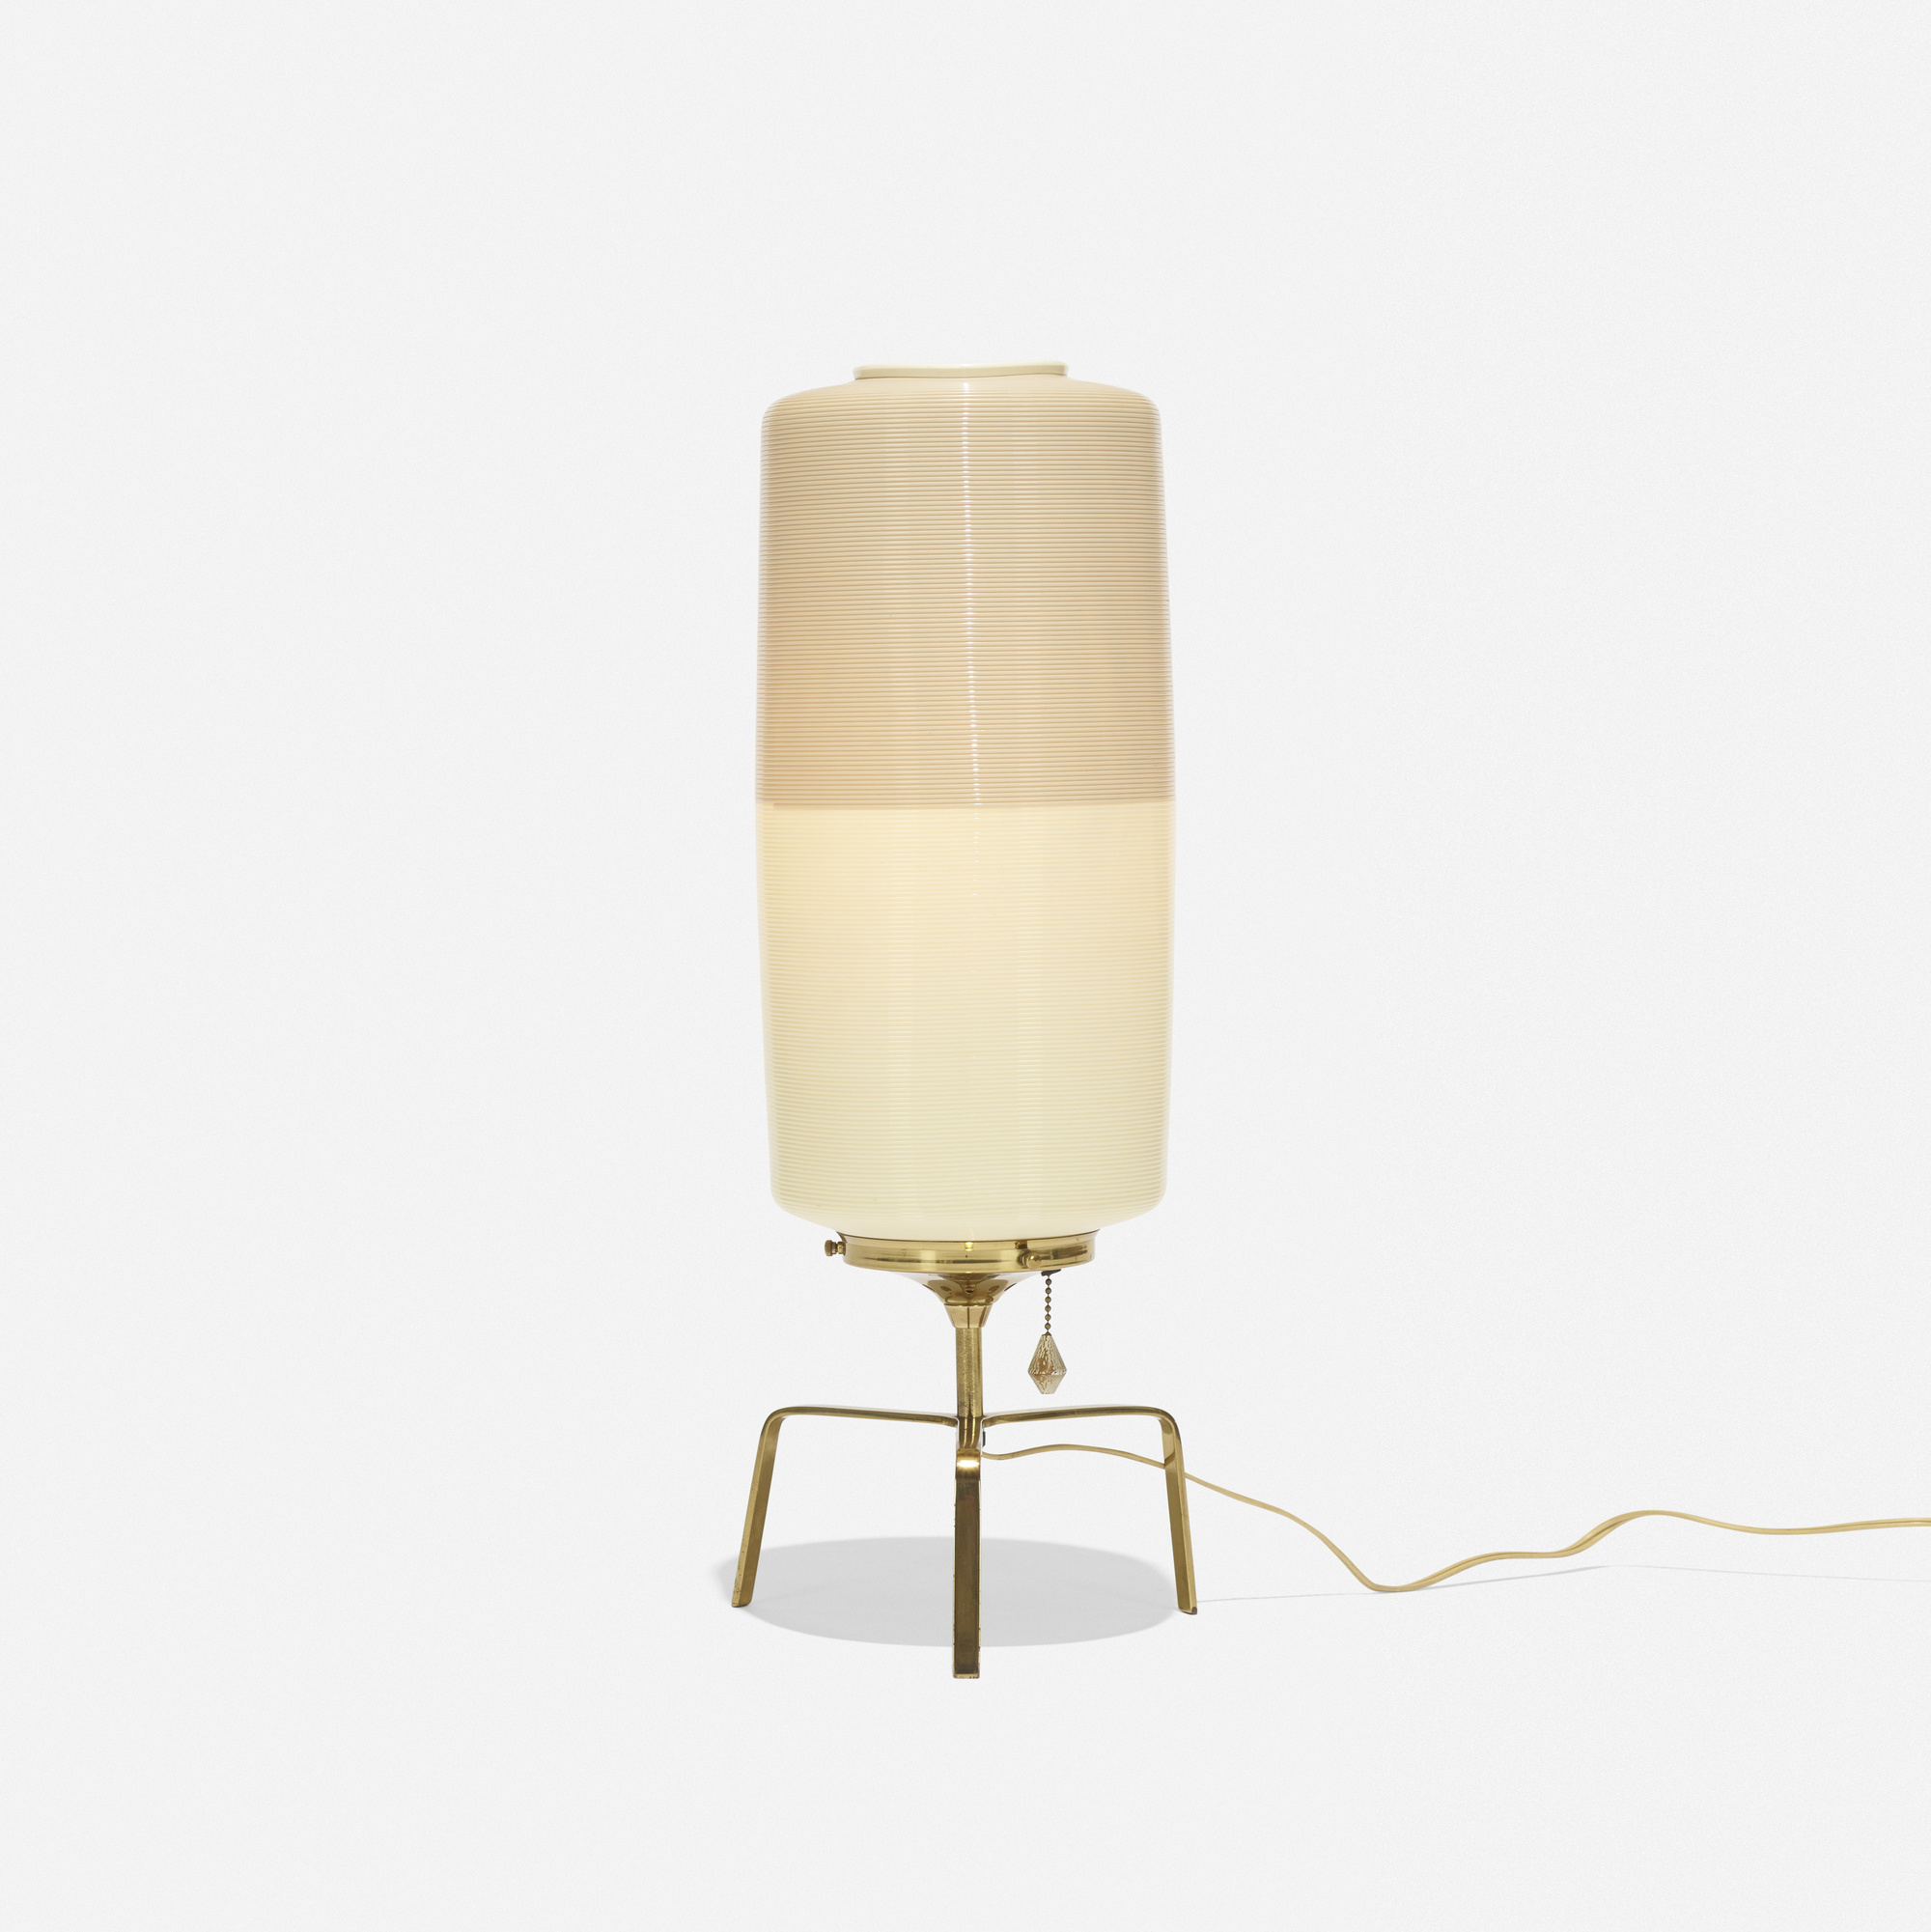 174: Yasha Heifetz / Rotaflex table lamp (1 of 1)